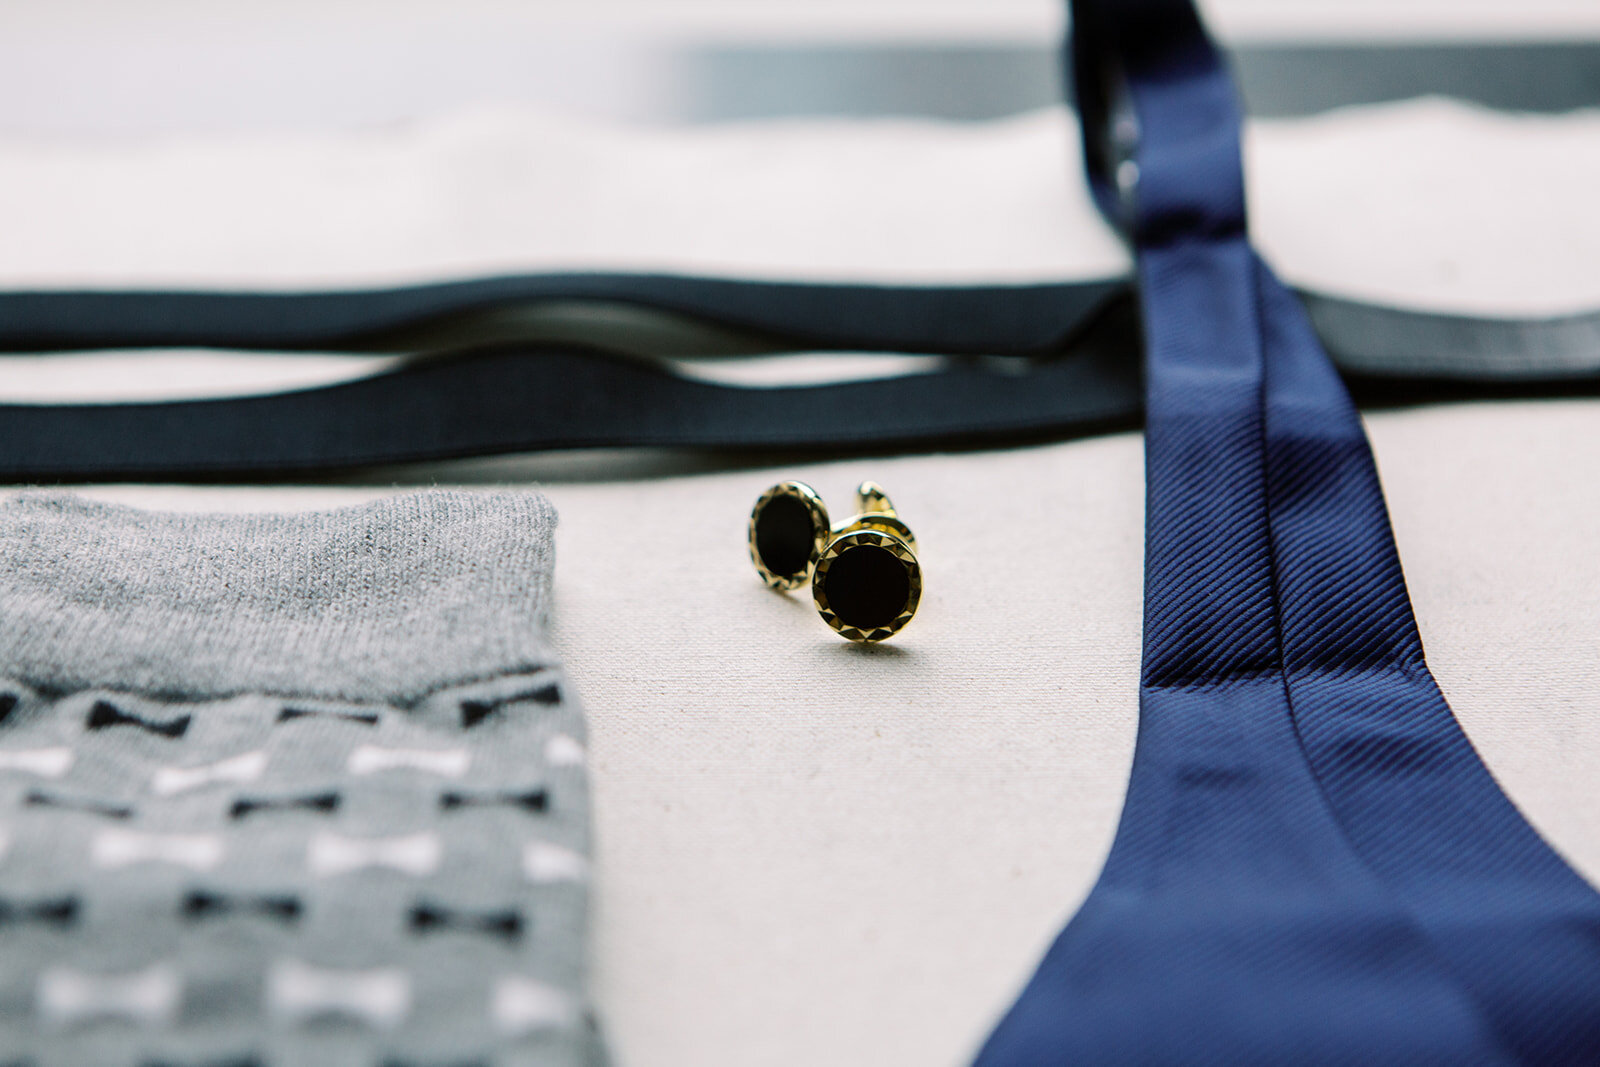 06-Venue-Six10-Wedding-cufflinks